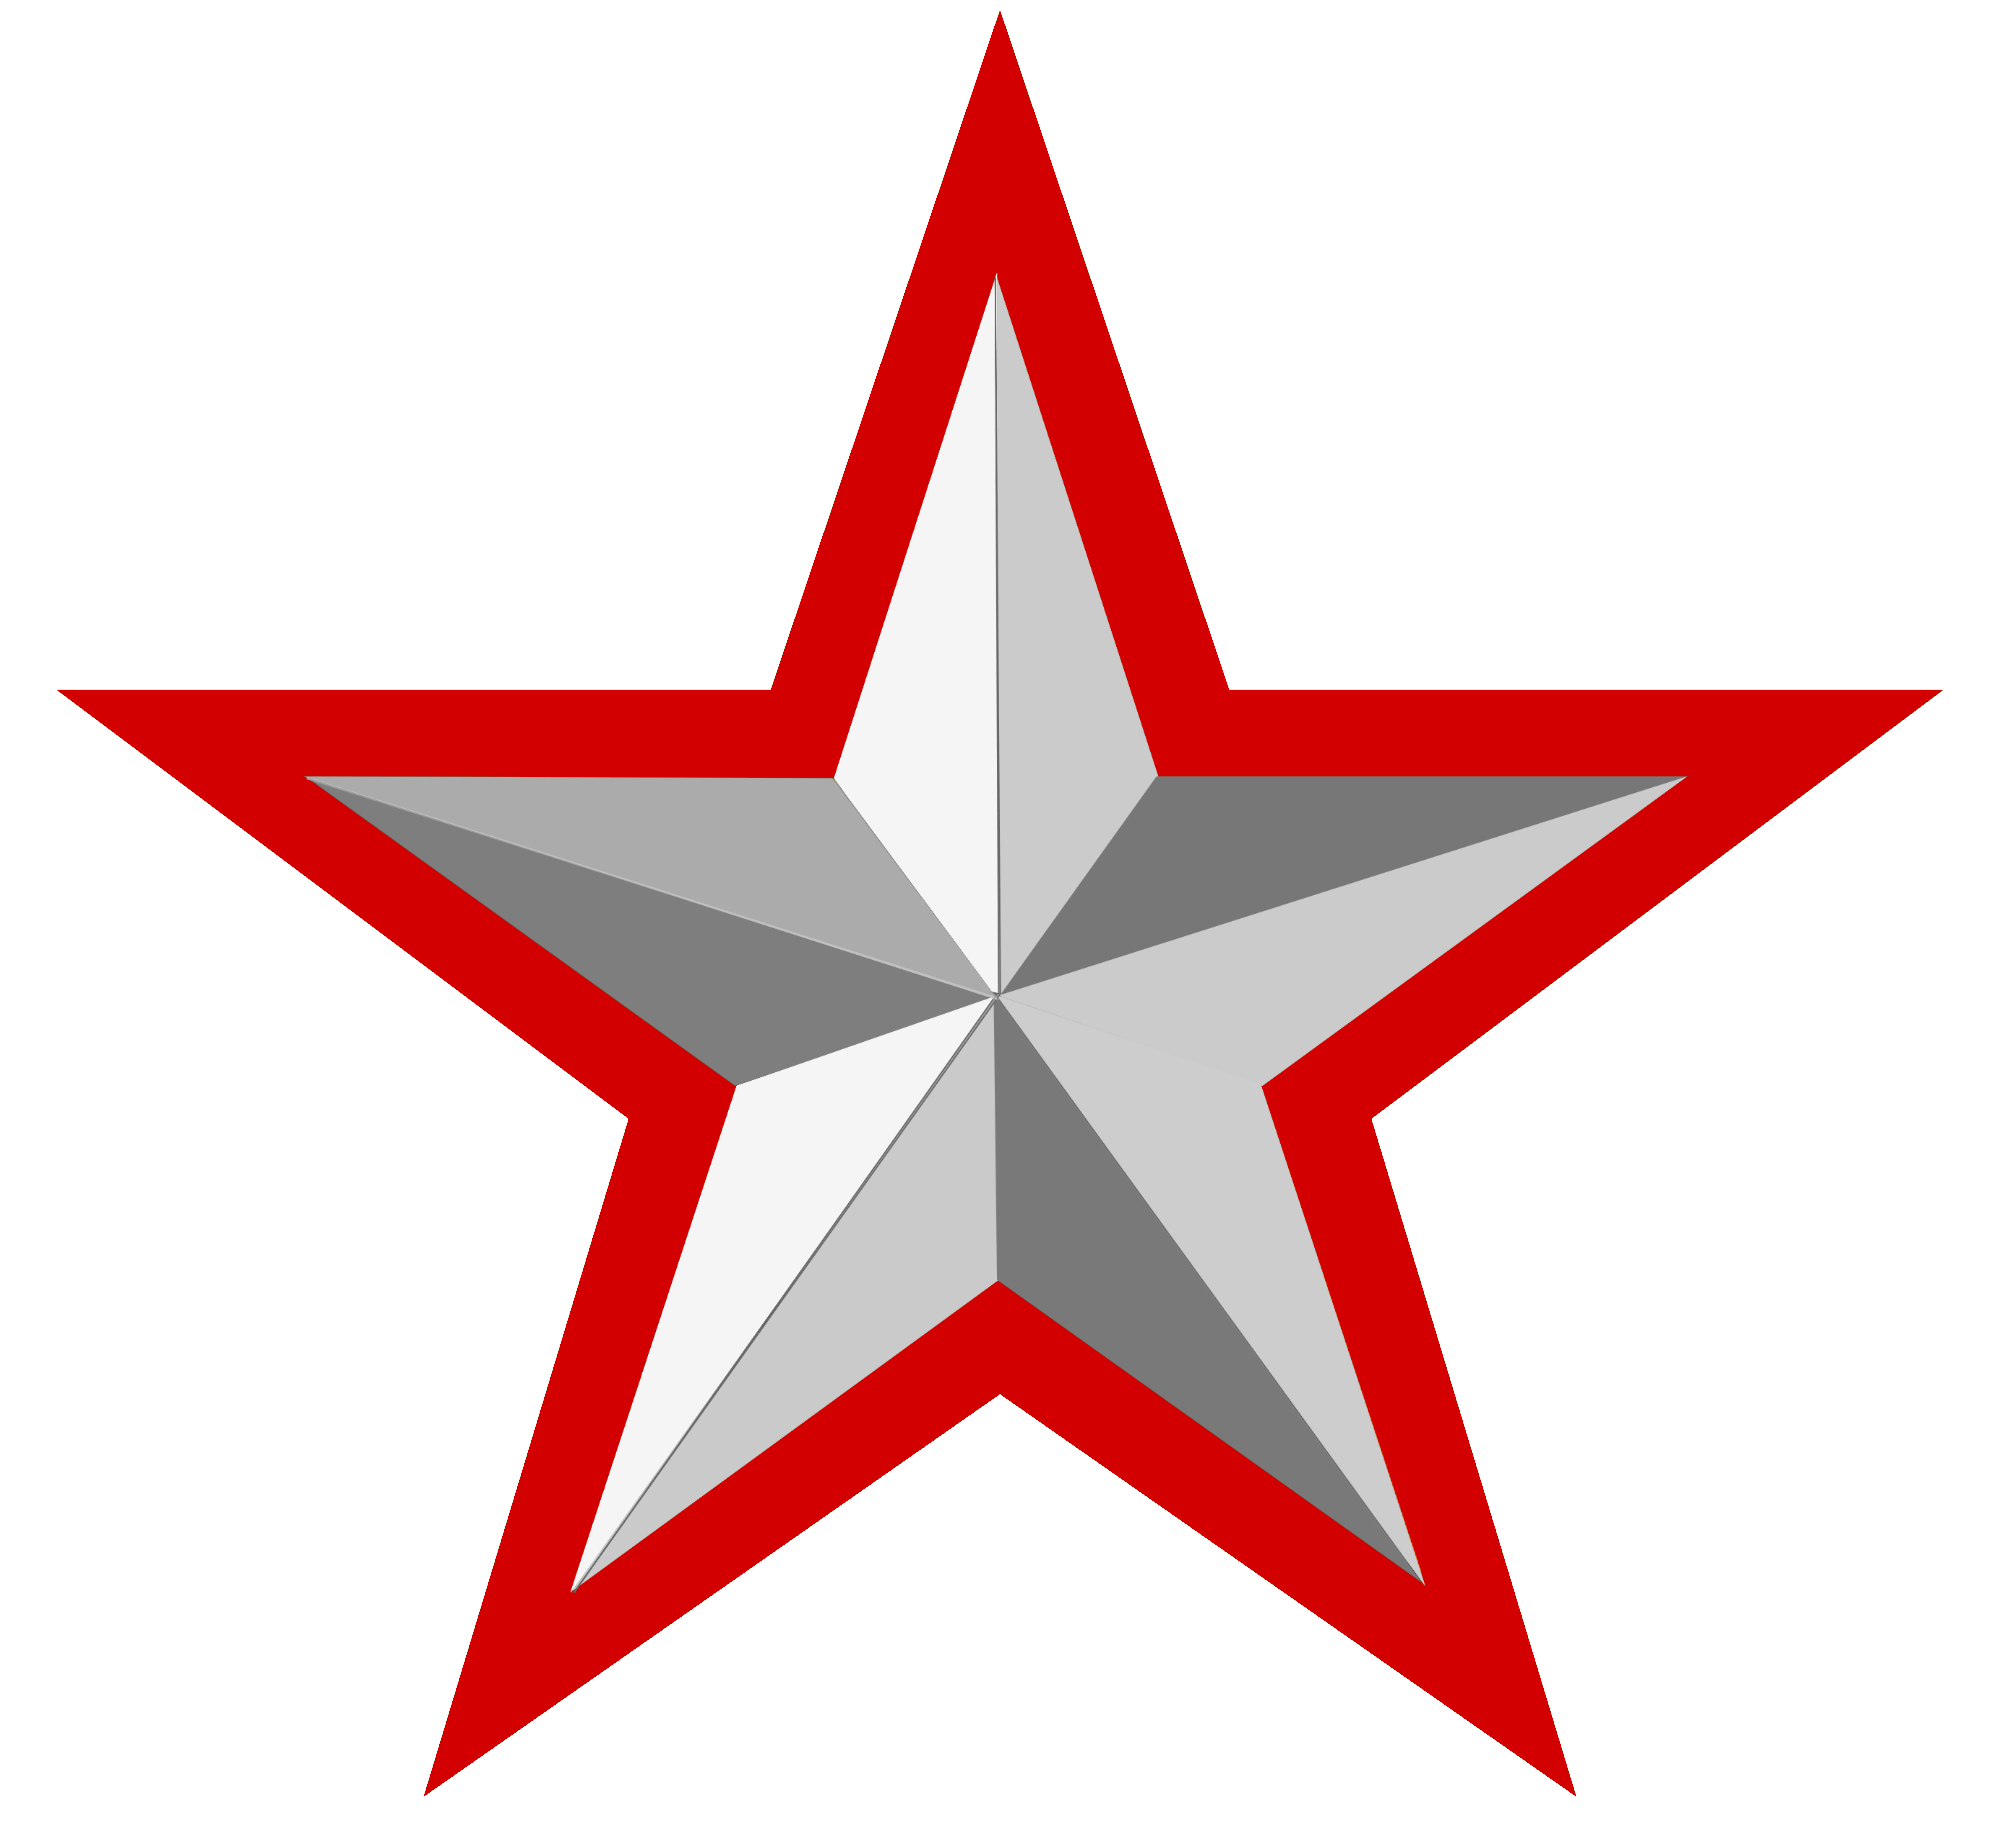 Stars png images free. Galaxy clipart realistic star